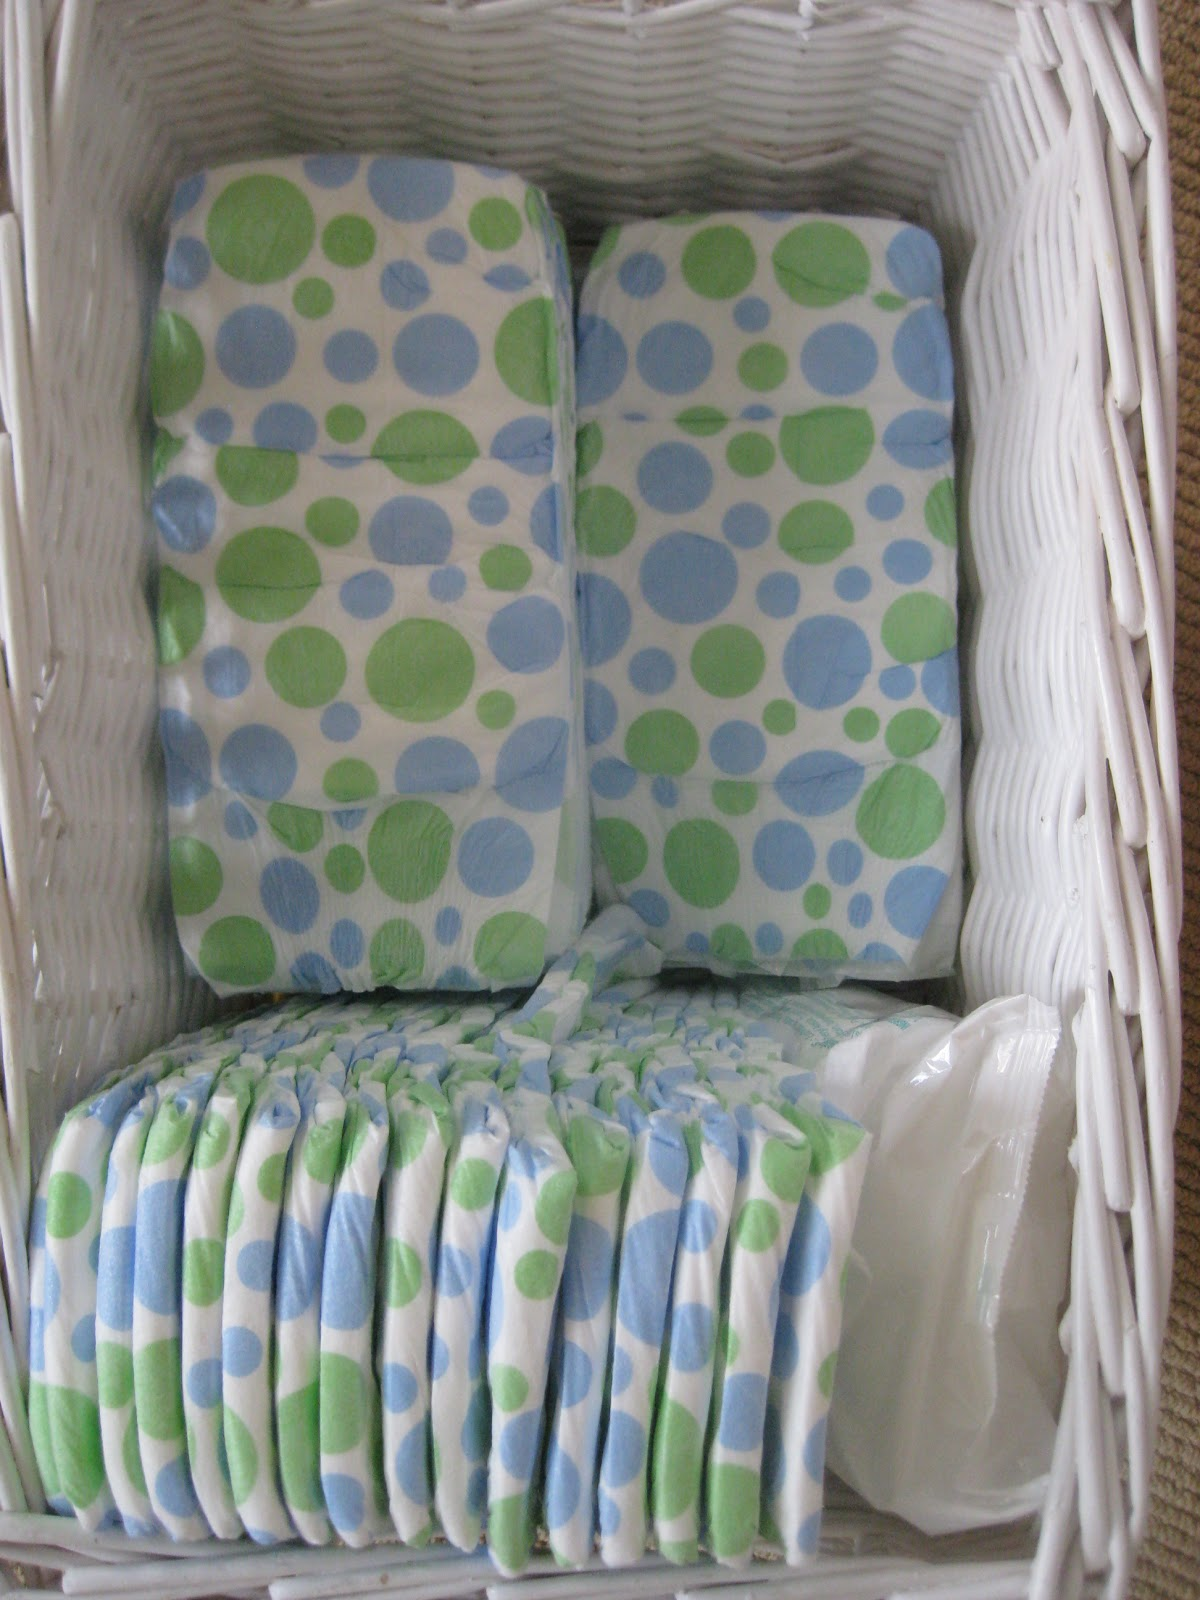 organized obsessed obsessed with target diapers. Black Bedroom Furniture Sets. Home Design Ideas